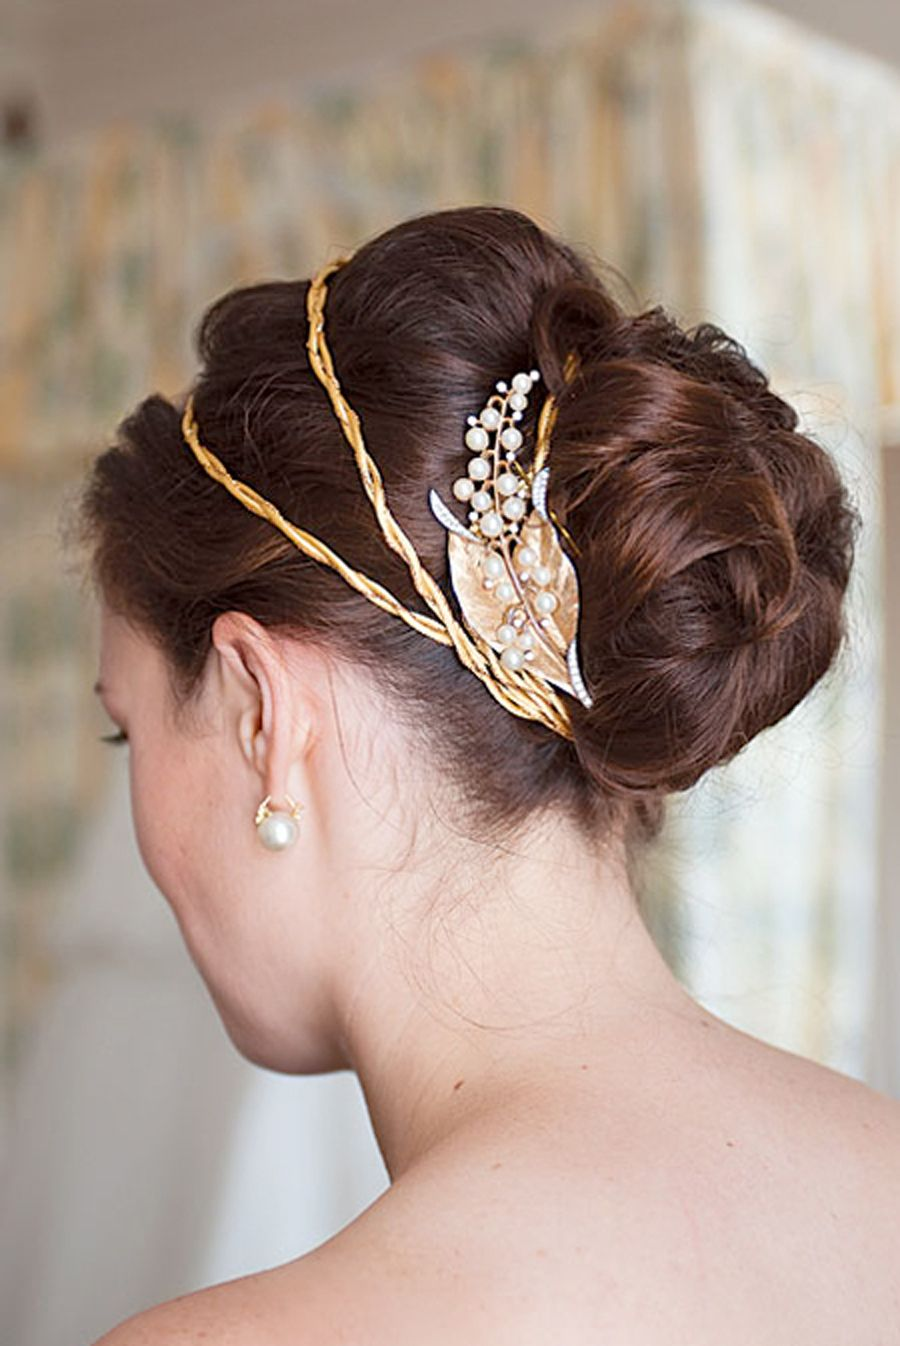 Pin By Belky King On Weddings Gold Hair Accessories Wedding Hair Accessories Vintage Wedding Hair